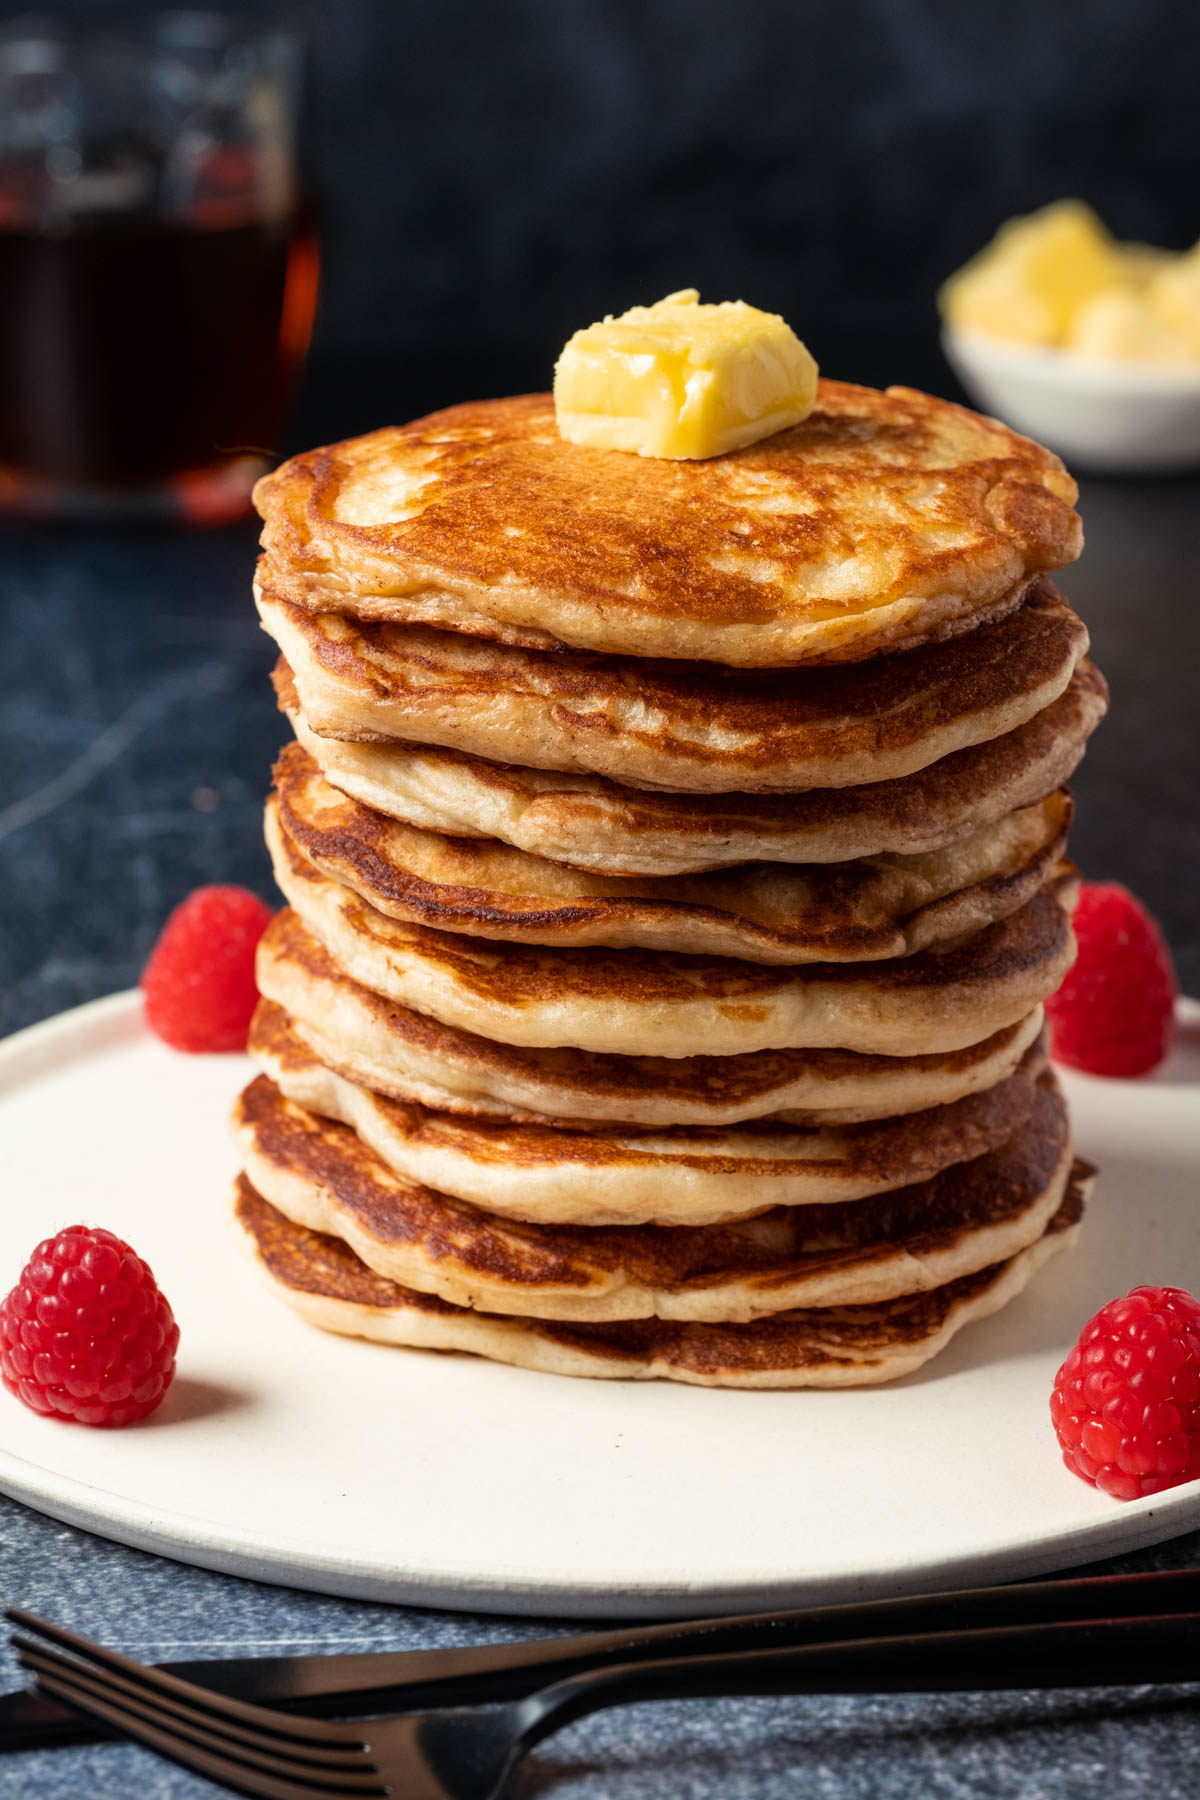 Stack of eggless pancakes topped with a knob of butter on a white plate.